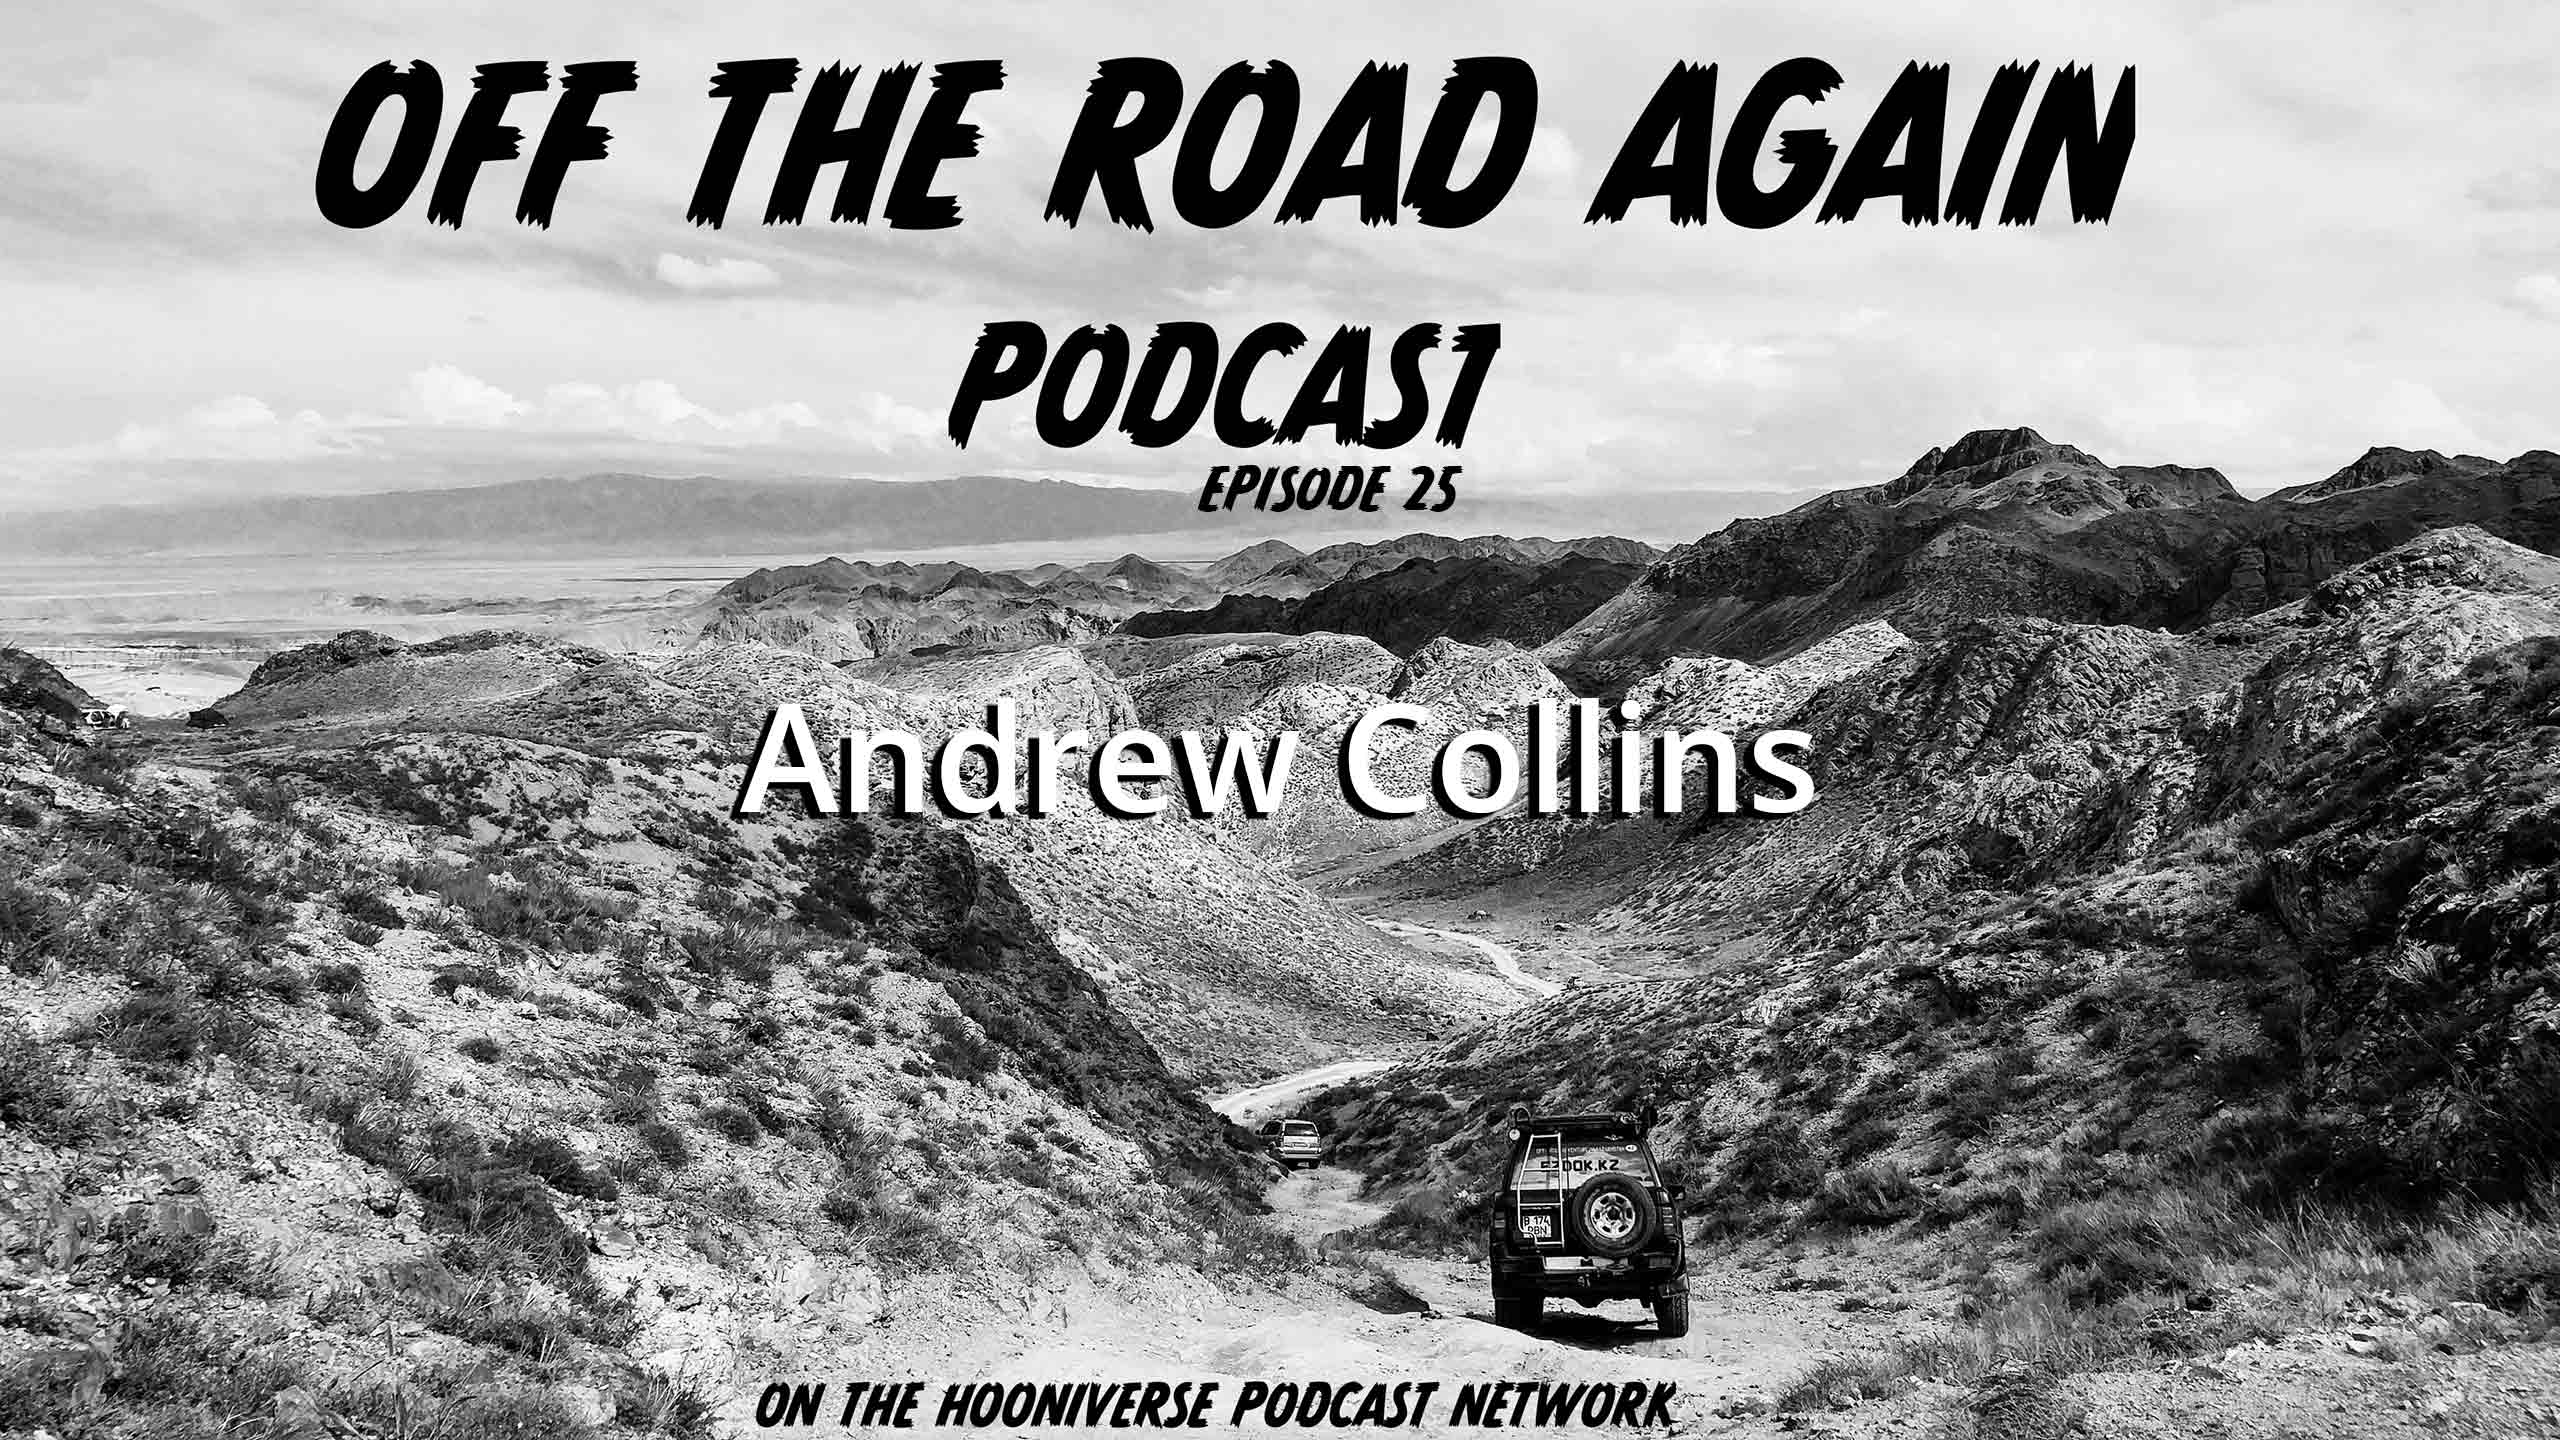 Off The Road Again Podcast: Andrew Collins